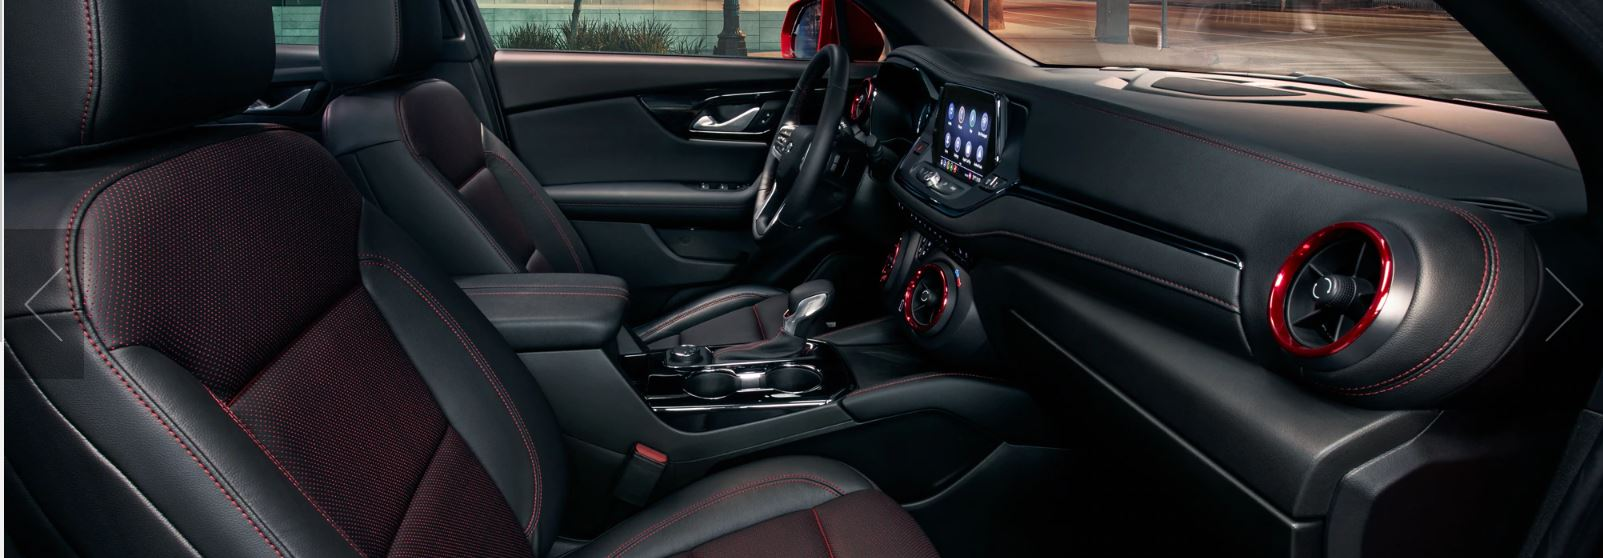 Interior of the 2020 Chevrolet Blazer